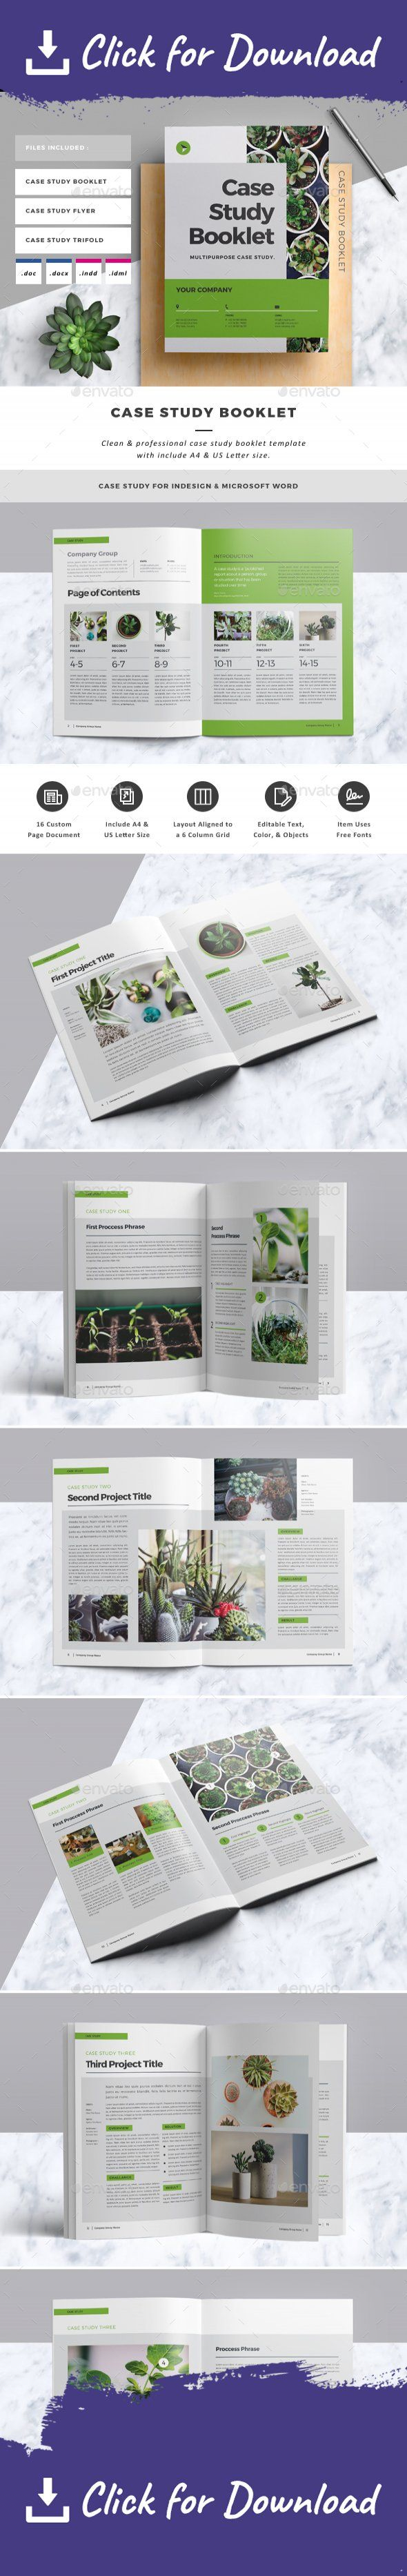 a4, agency, annual report, booklet, brief, brochure, business, case study, catalog, clean, corporate, creative, design, doc, editorial, flyer, indesign, informational, marketing, multipurpose, newsletter, portfolio, presentation, professional, project, report, swiss, template, word, word file Case Study Booklet Template. This layout is suitable for any project purpose. Very easy to use and customise.   ................................................   Features :   - 2 sizes: A4 & US...